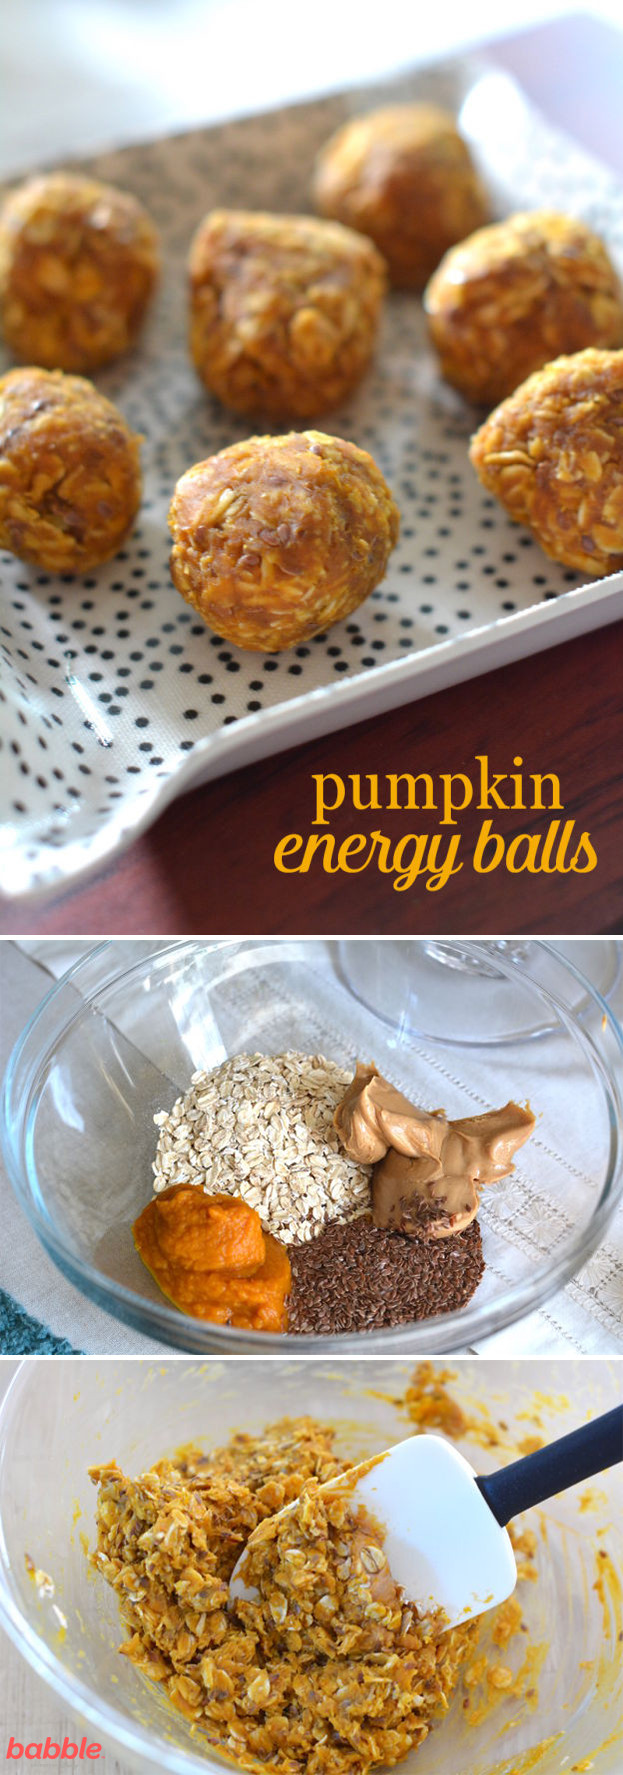 Healthy Pumpkin Seed Recipes  Pumpkin Energy Balls So Easy They Almost Make Themselves